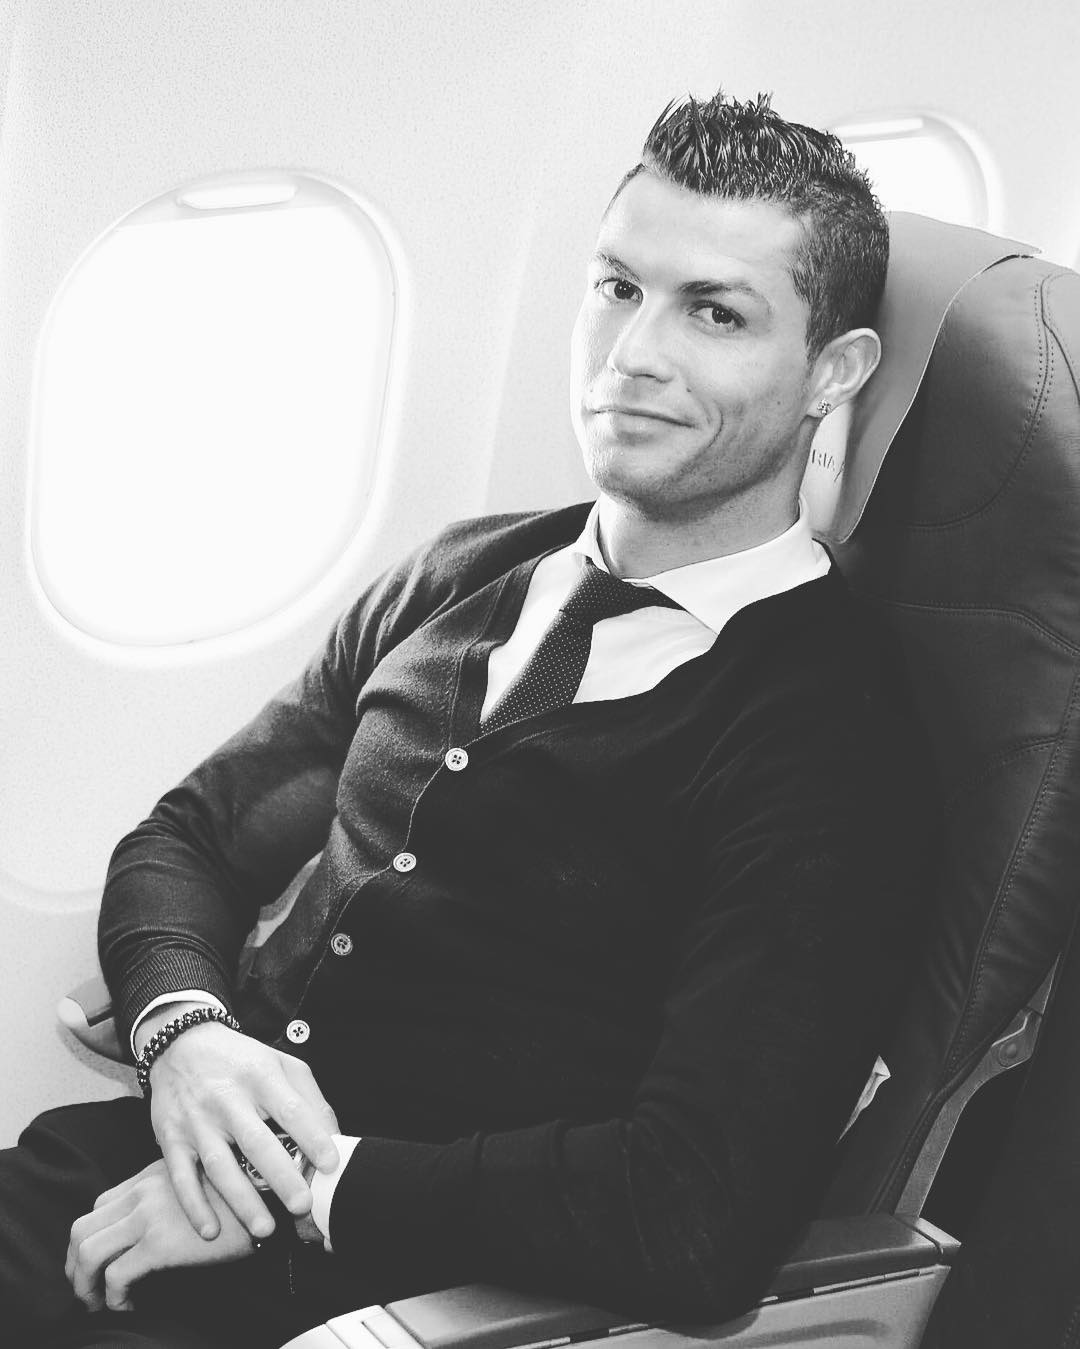 113m Likes 841k Comments Cristiano Ronaldo cristiano on Instagram Holidays with Love!